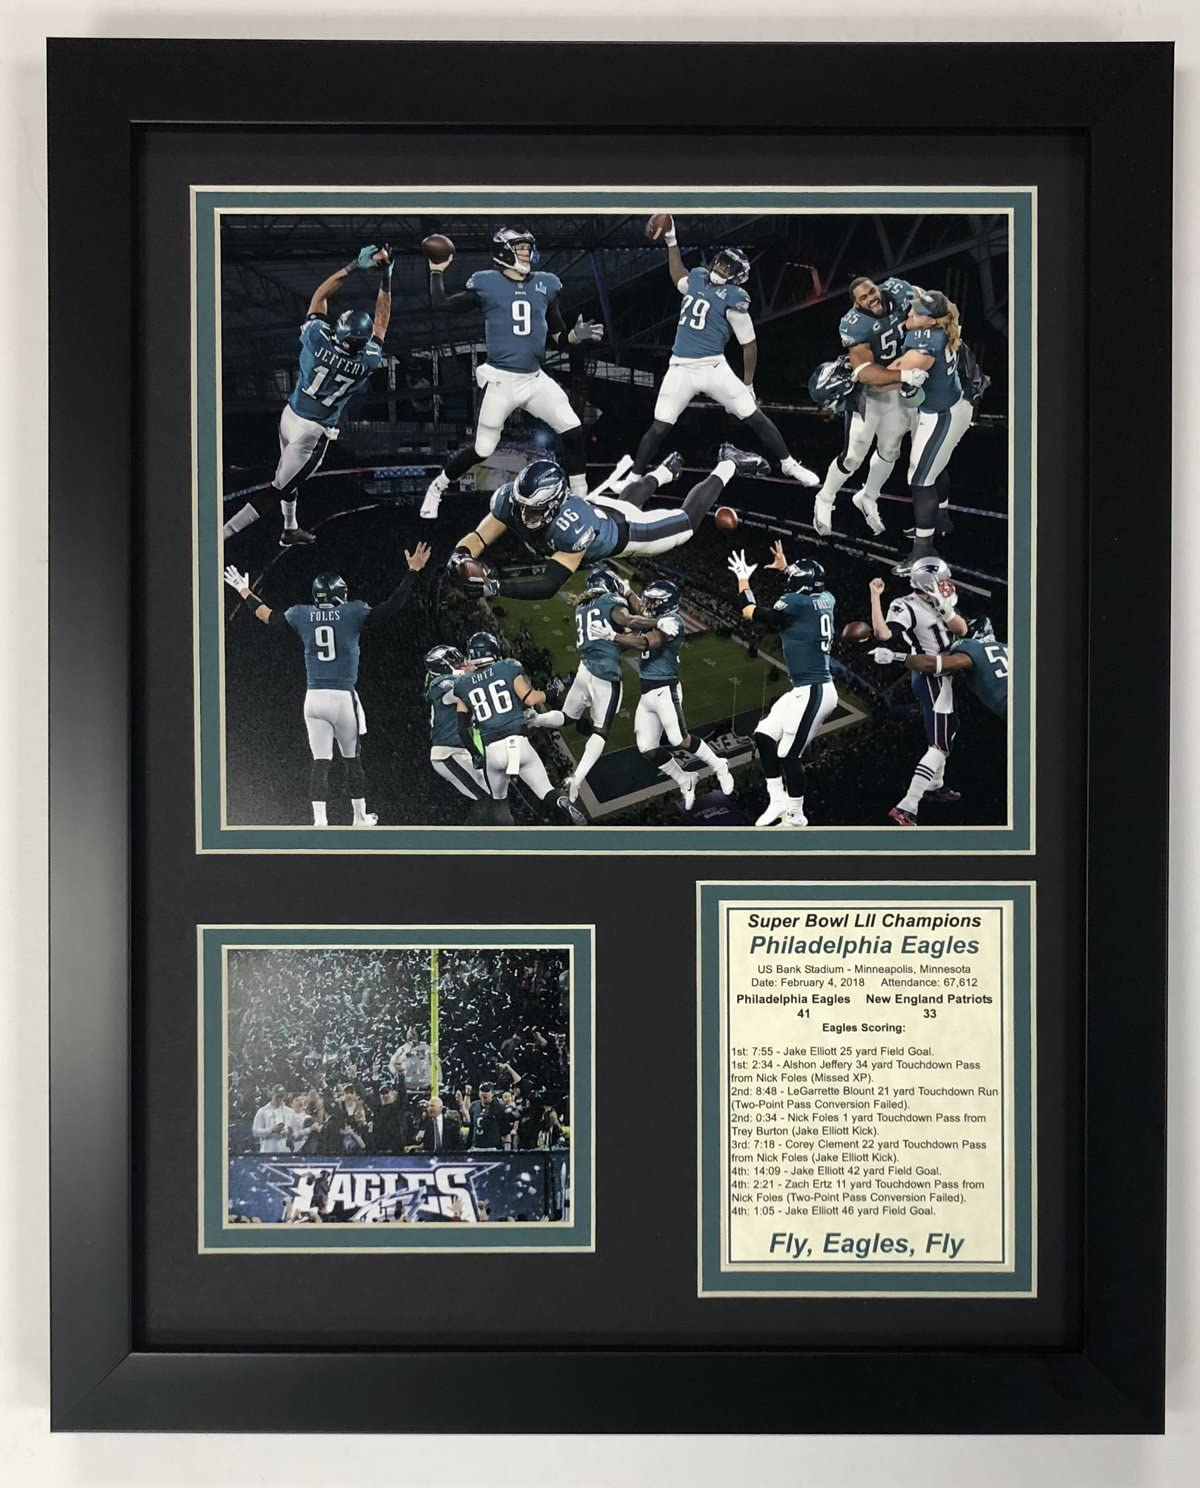 Legends Never Die Philadelphia Eagles Super Bowl 52 NFL Champions Collectible 12x15 Framed Photo Collage Wall Art Decor